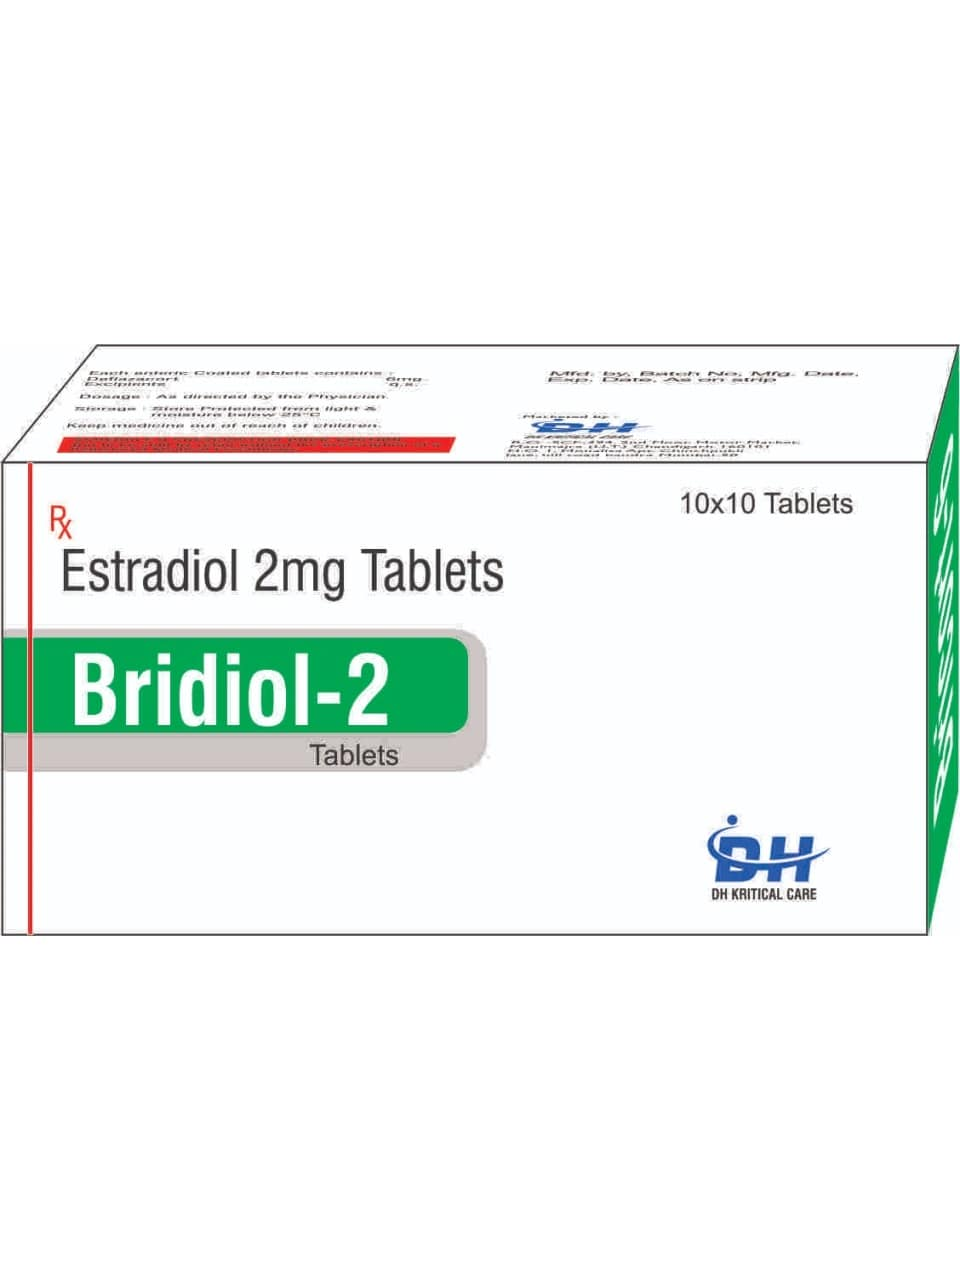 28-Bridiol-2-Estradiol-2mg-Tablets-DH-Kritical-Care-Best-PCD-Pharma-Franchise-Company-Chandigarh